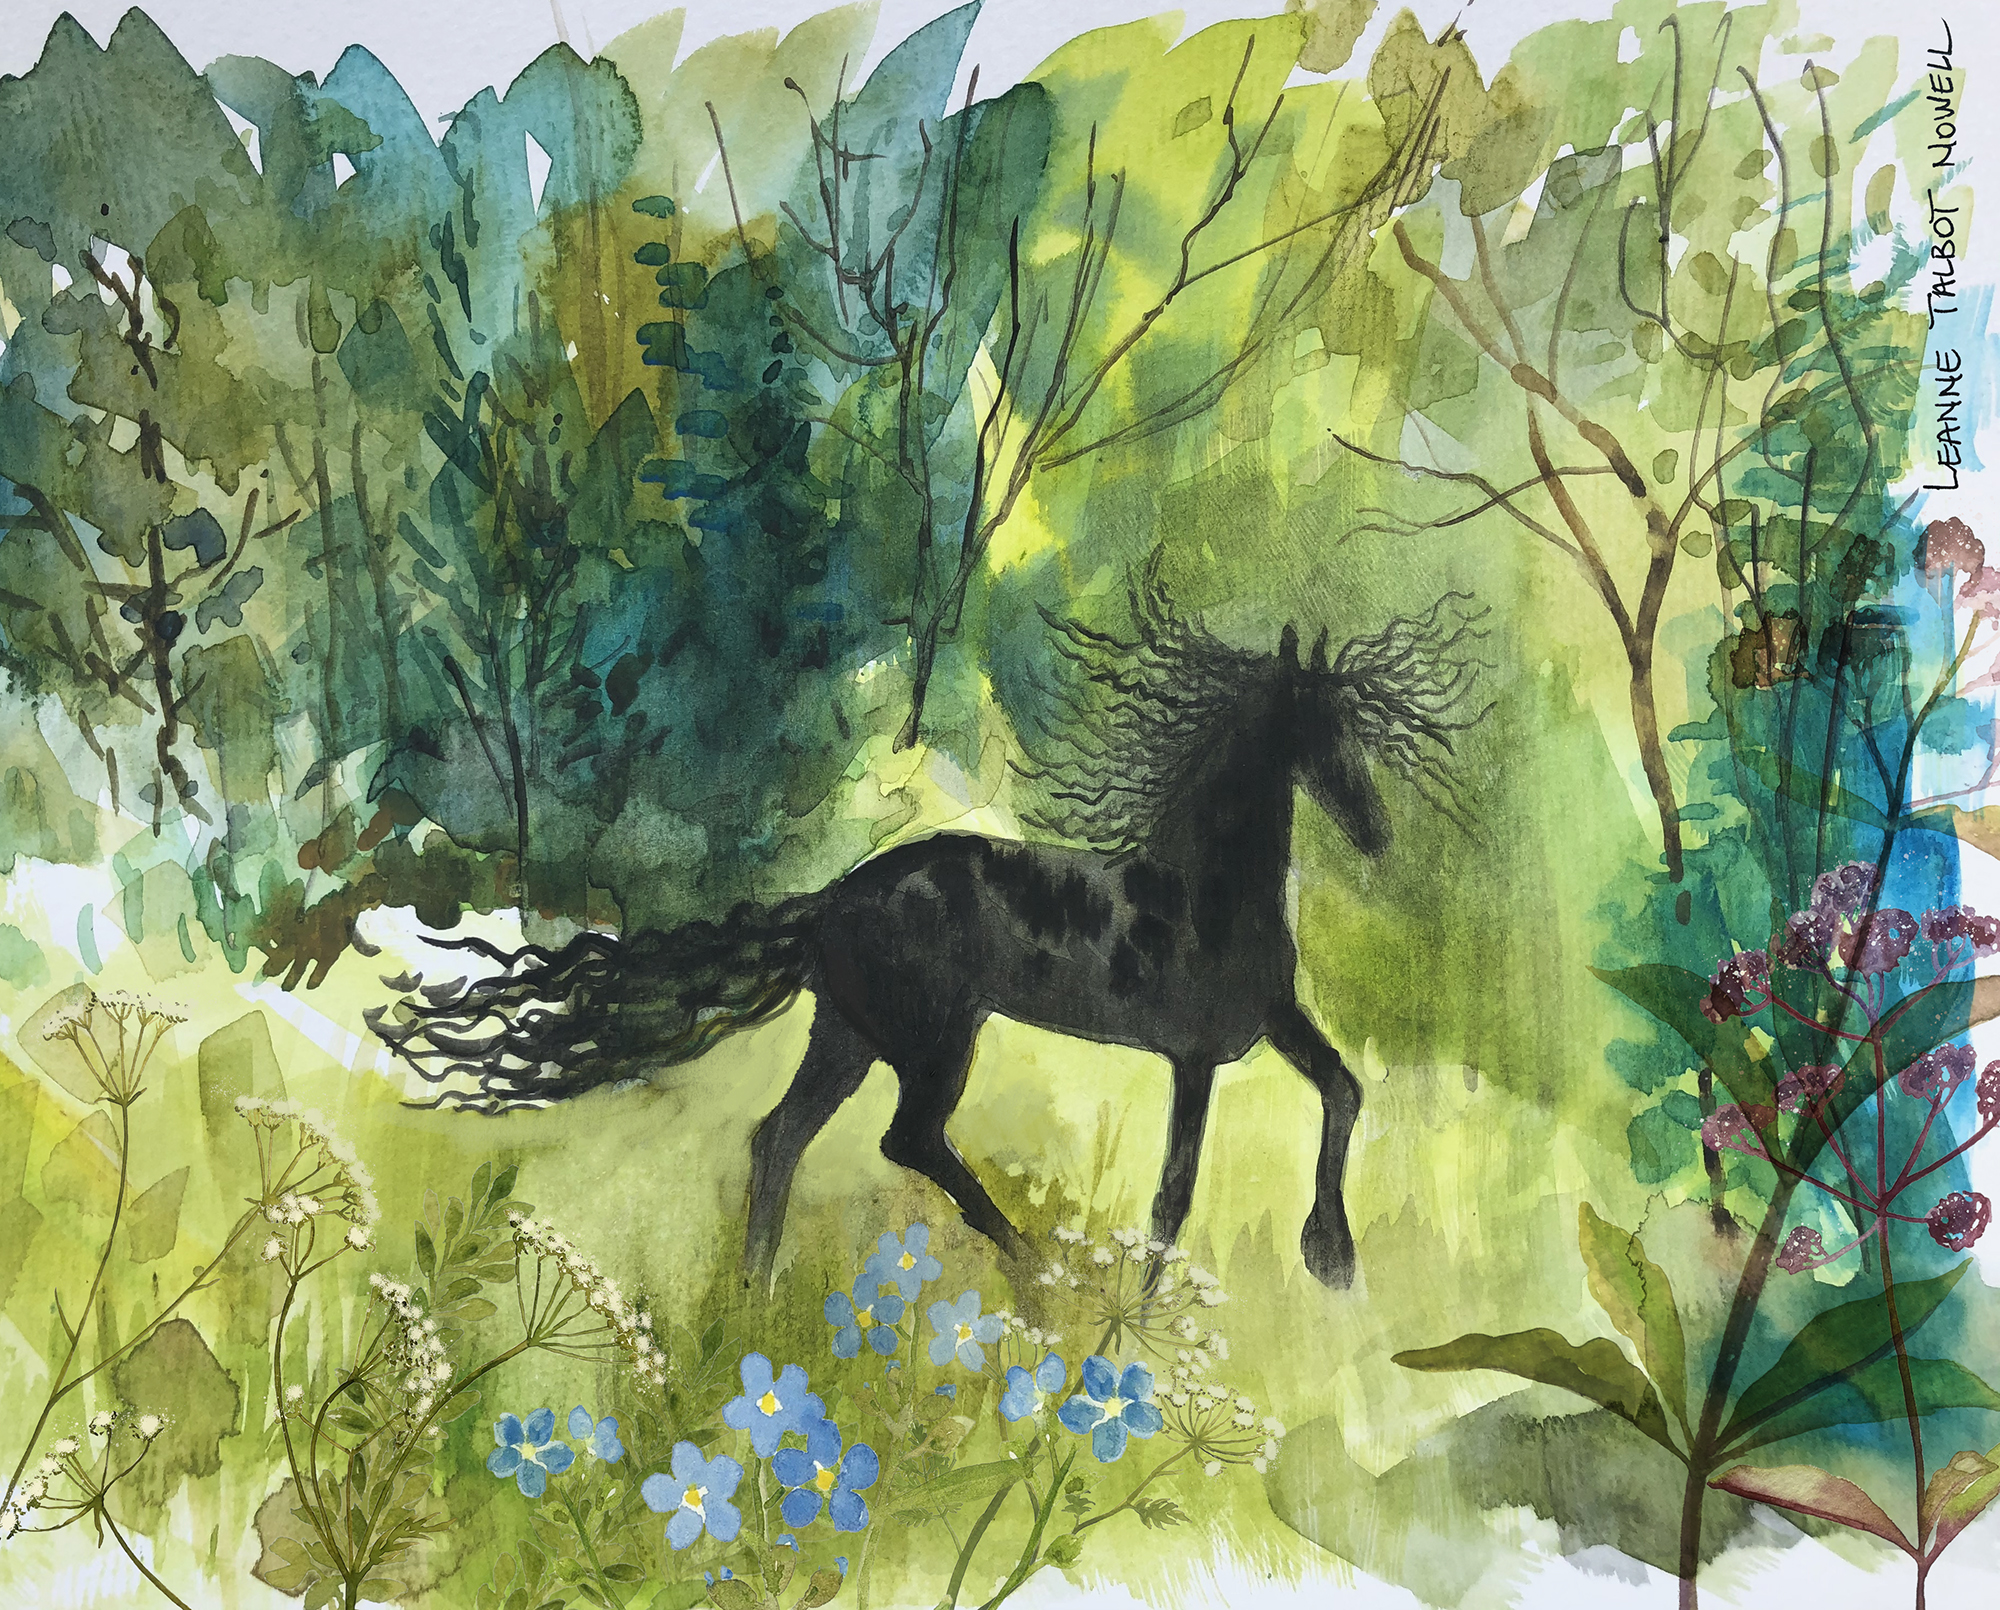 Friesian horse in the forest